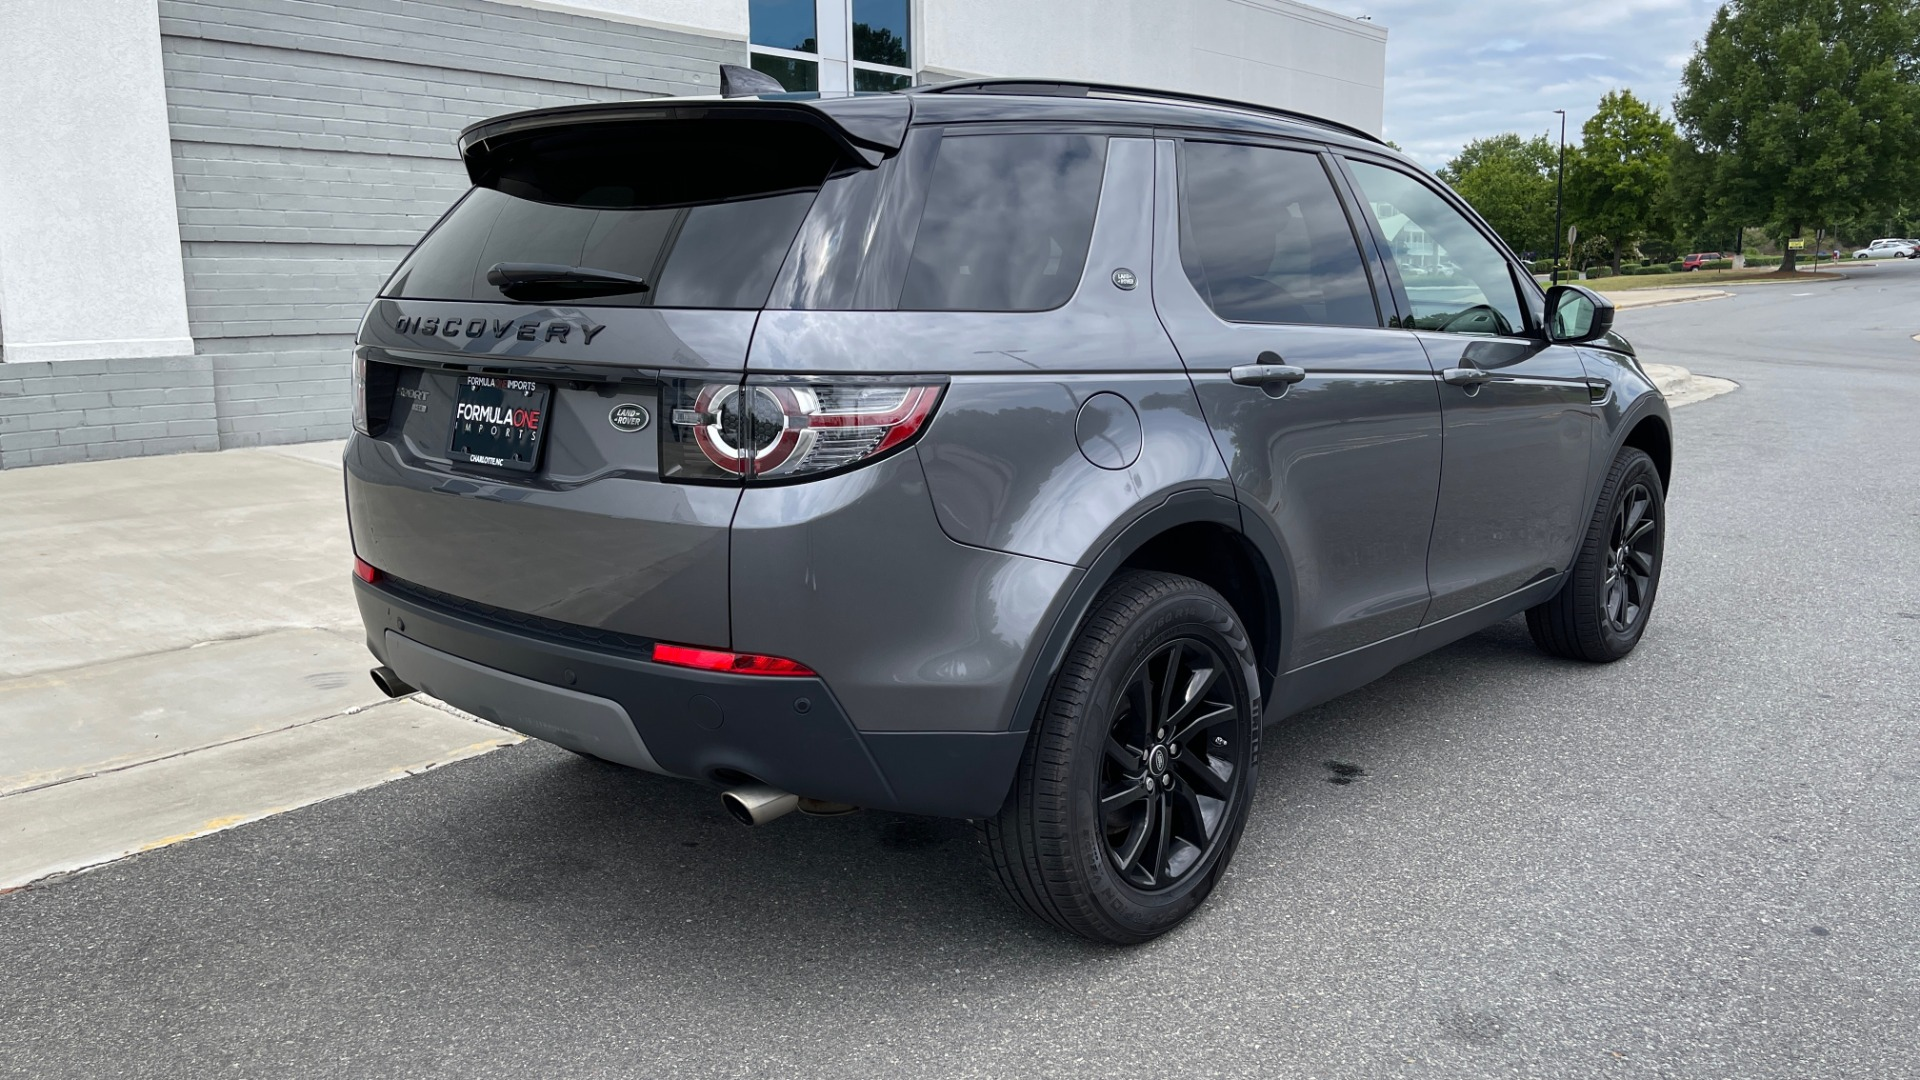 Used 2018 Land Rover DISCOVERY SPORT HSE 4WD / NAV / PANO-ROOF / MERIDIAN SND / HTD STS / LANE ASST / REARVIEW for sale $34,995 at Formula Imports in Charlotte NC 28227 2